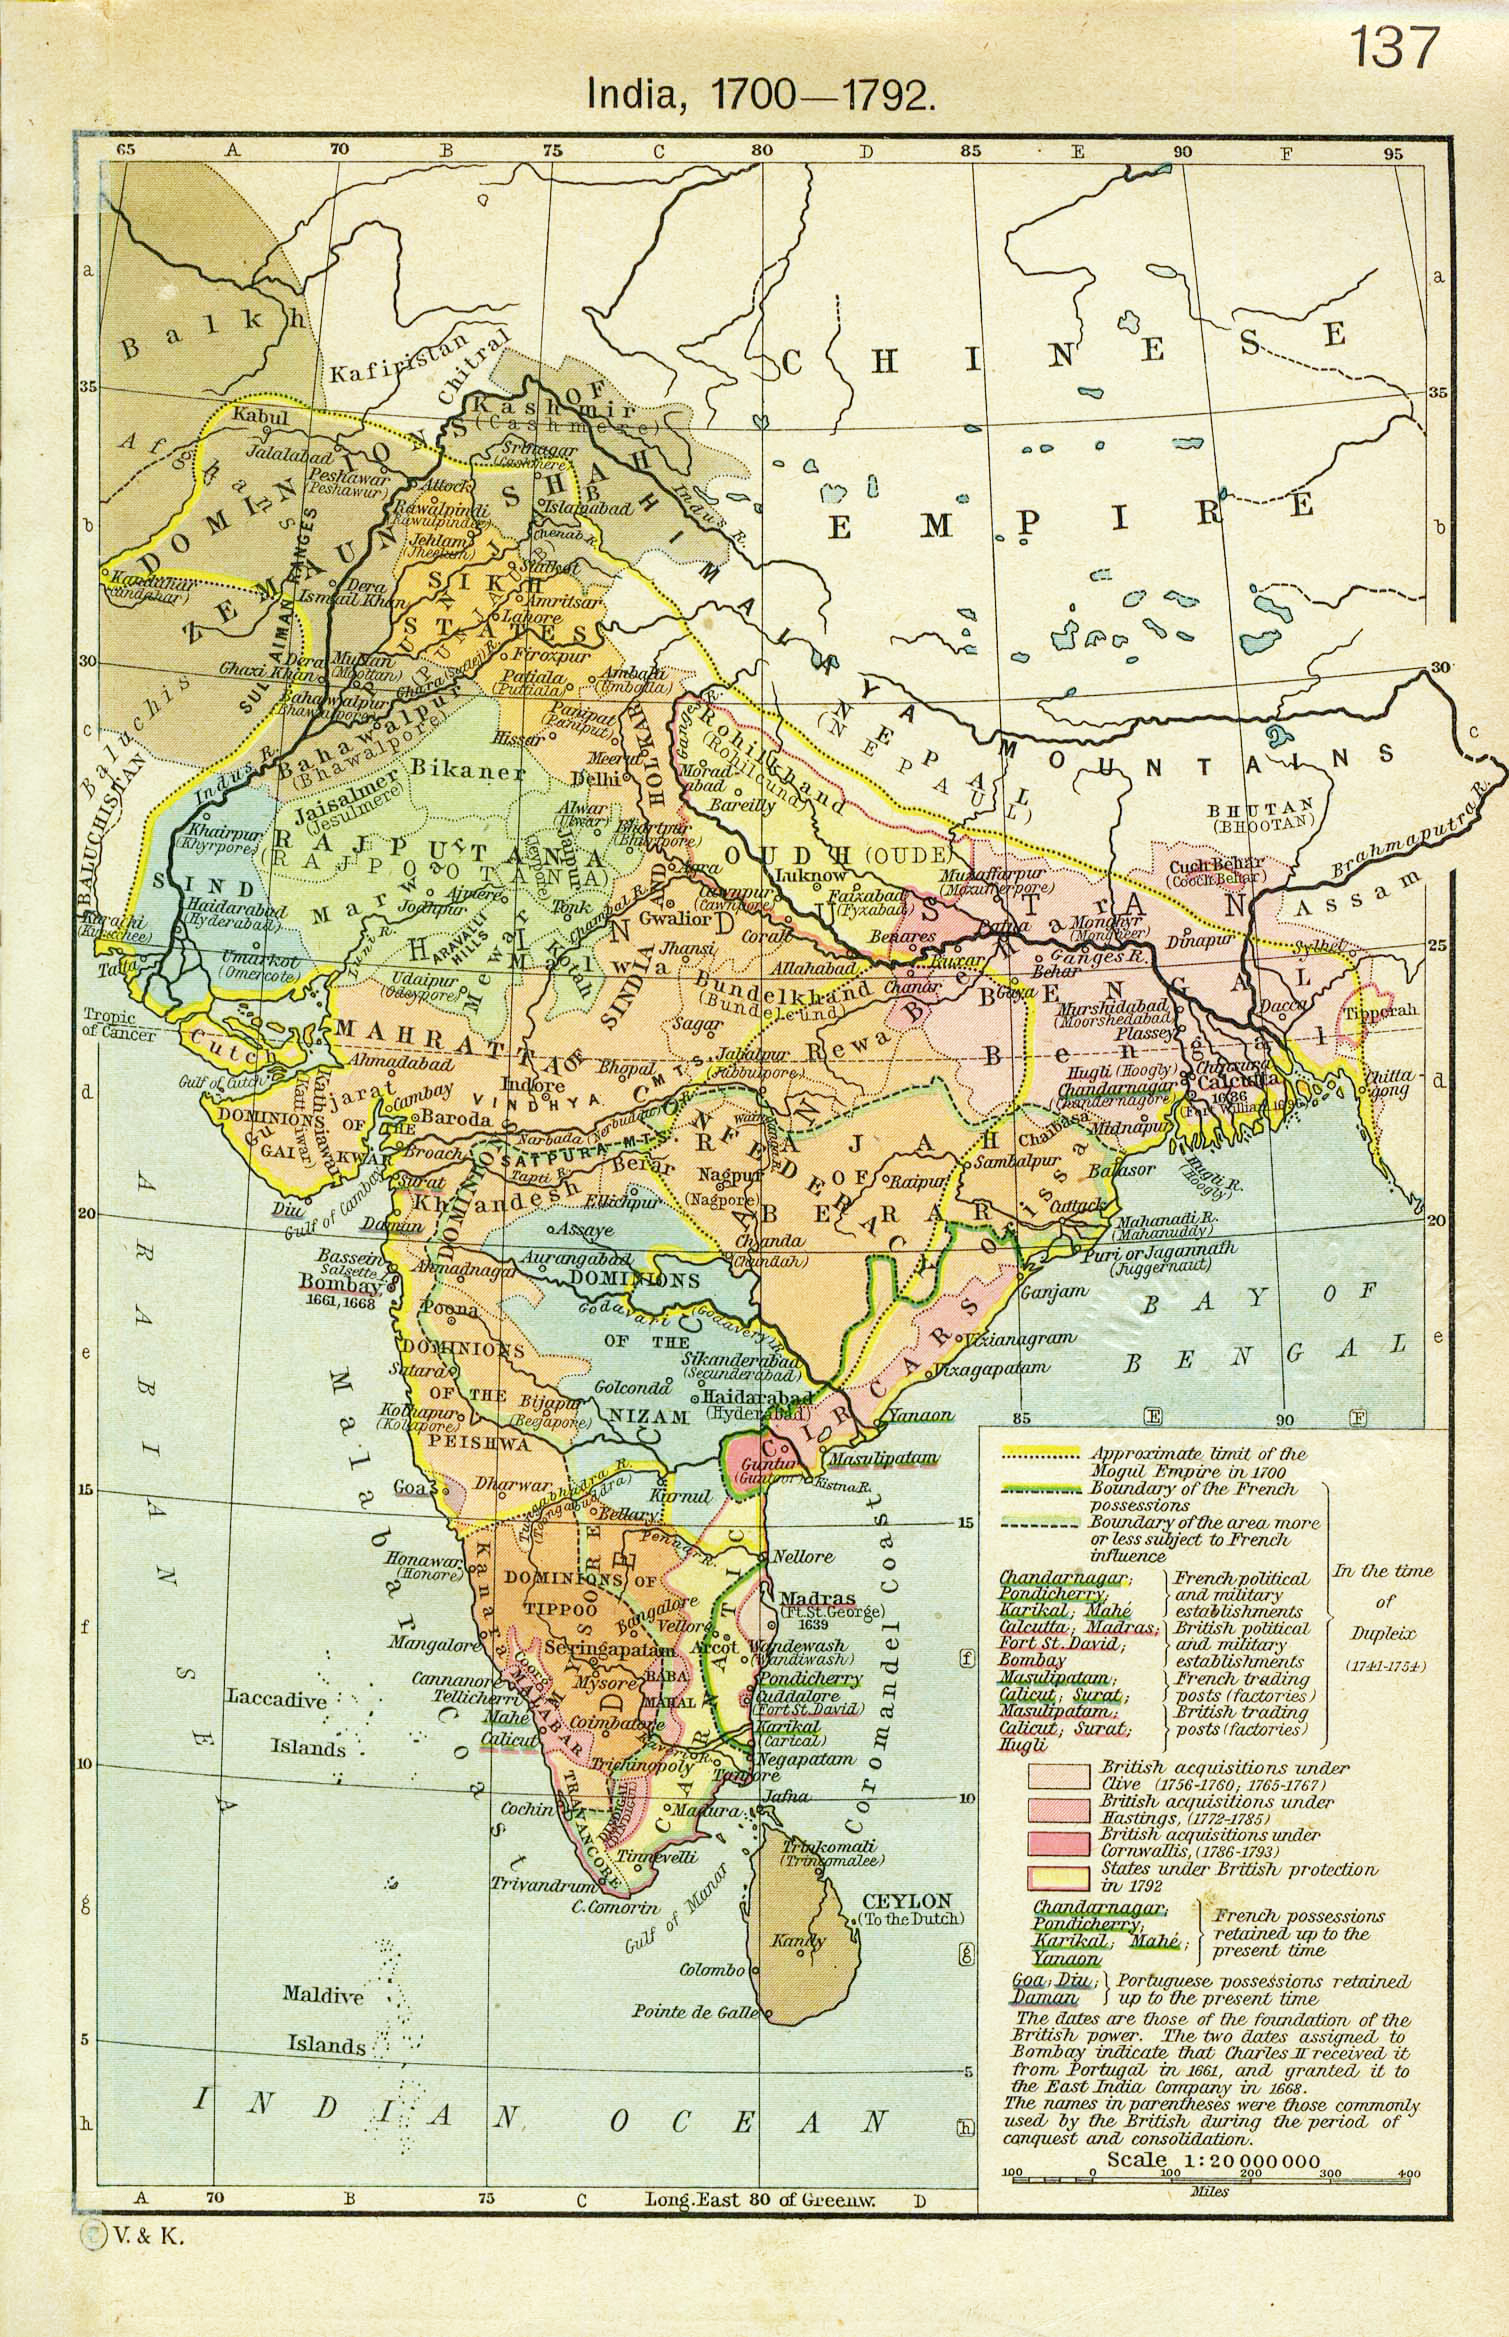 India (1700-1791) - The Historical Atlas by William R. Shepherd, 1923